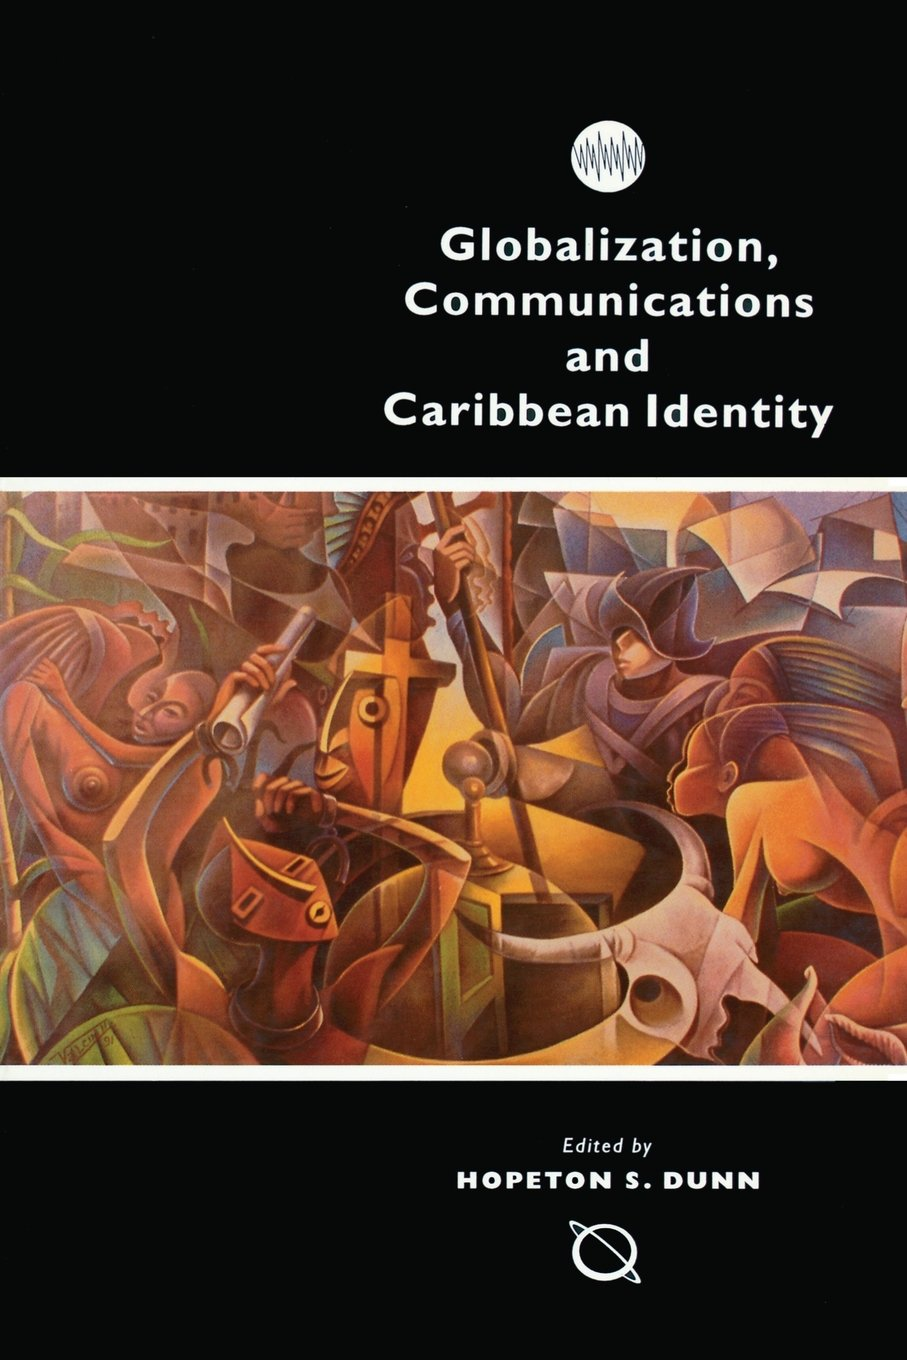 GLOBALIZATION, COMMUNICATION & CARIBBEAN IDENTITY